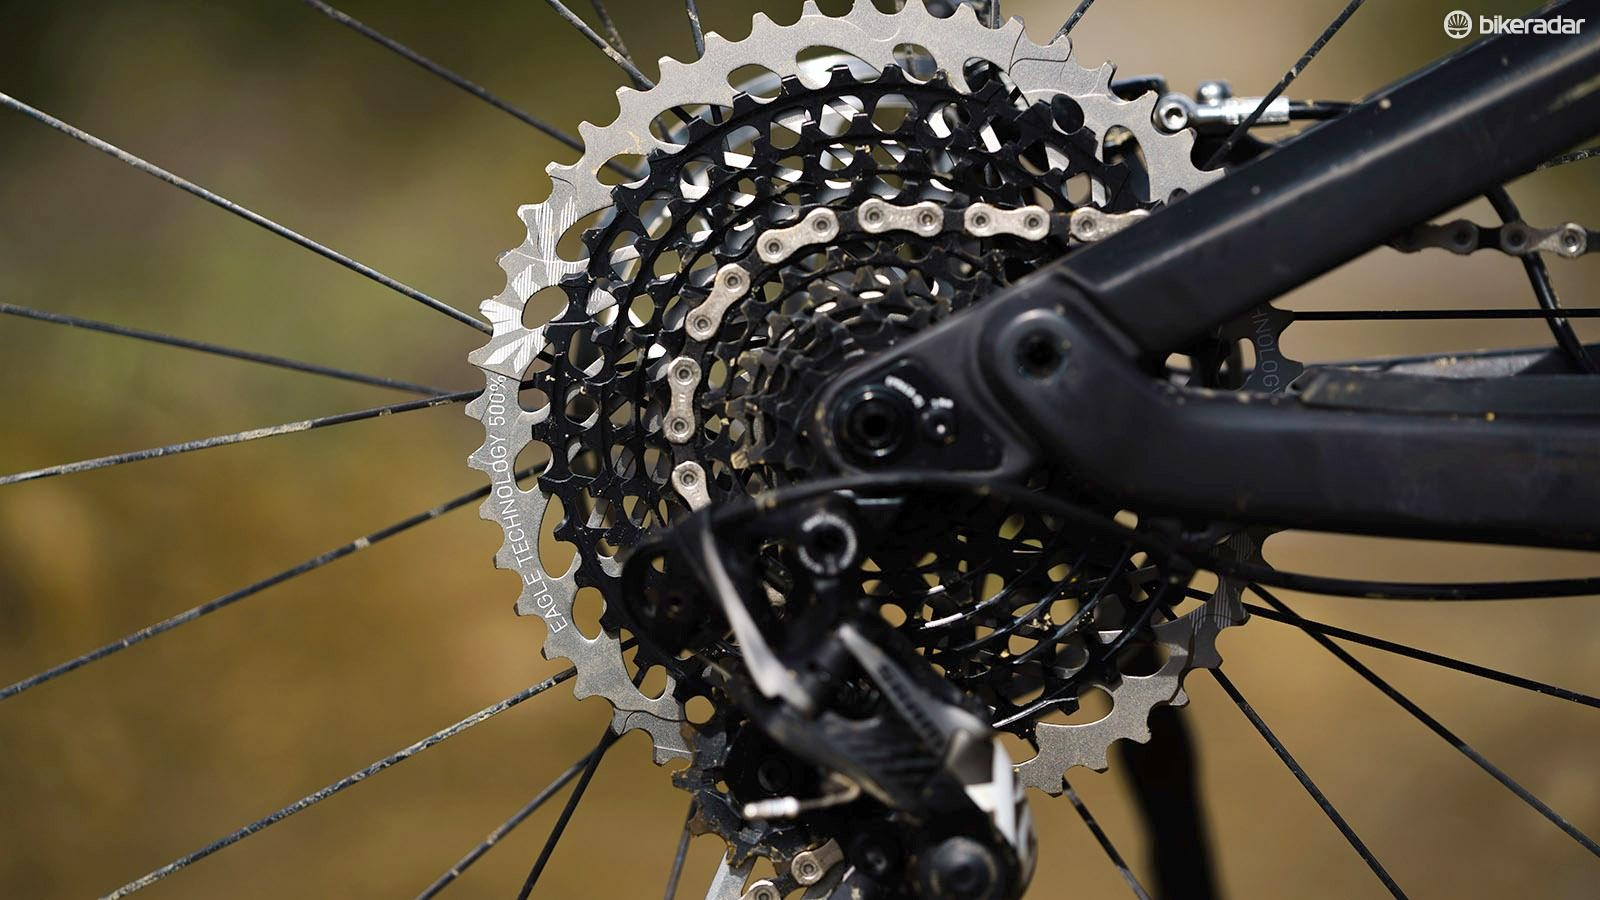 The Eagle cassette provides plenty of scope for spinning up long and steep climbs